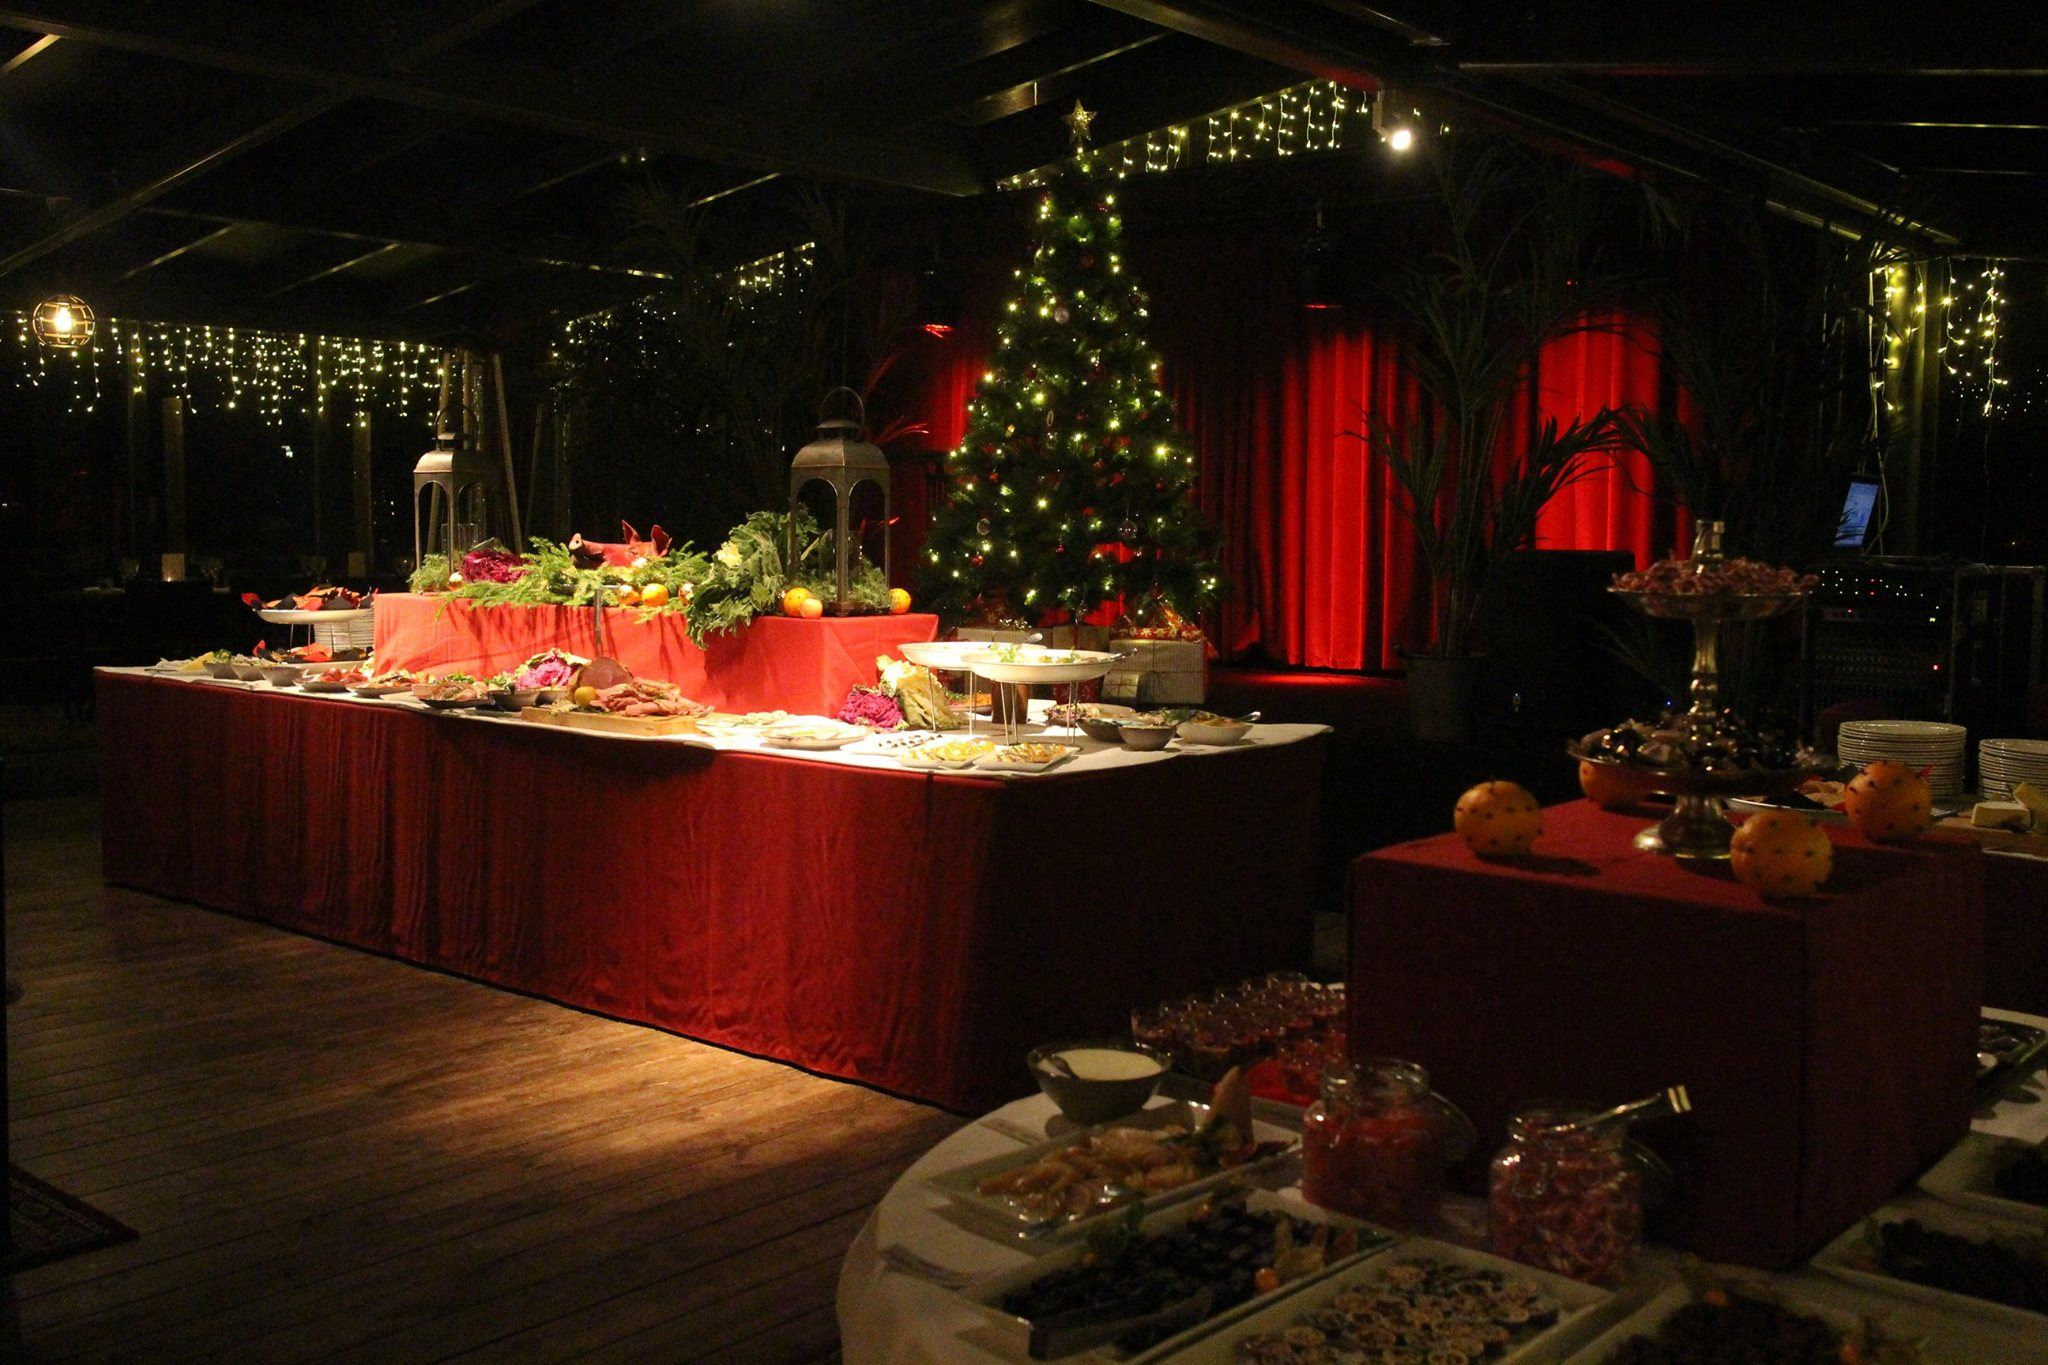 Christmas buffet at restaurant Brasserie